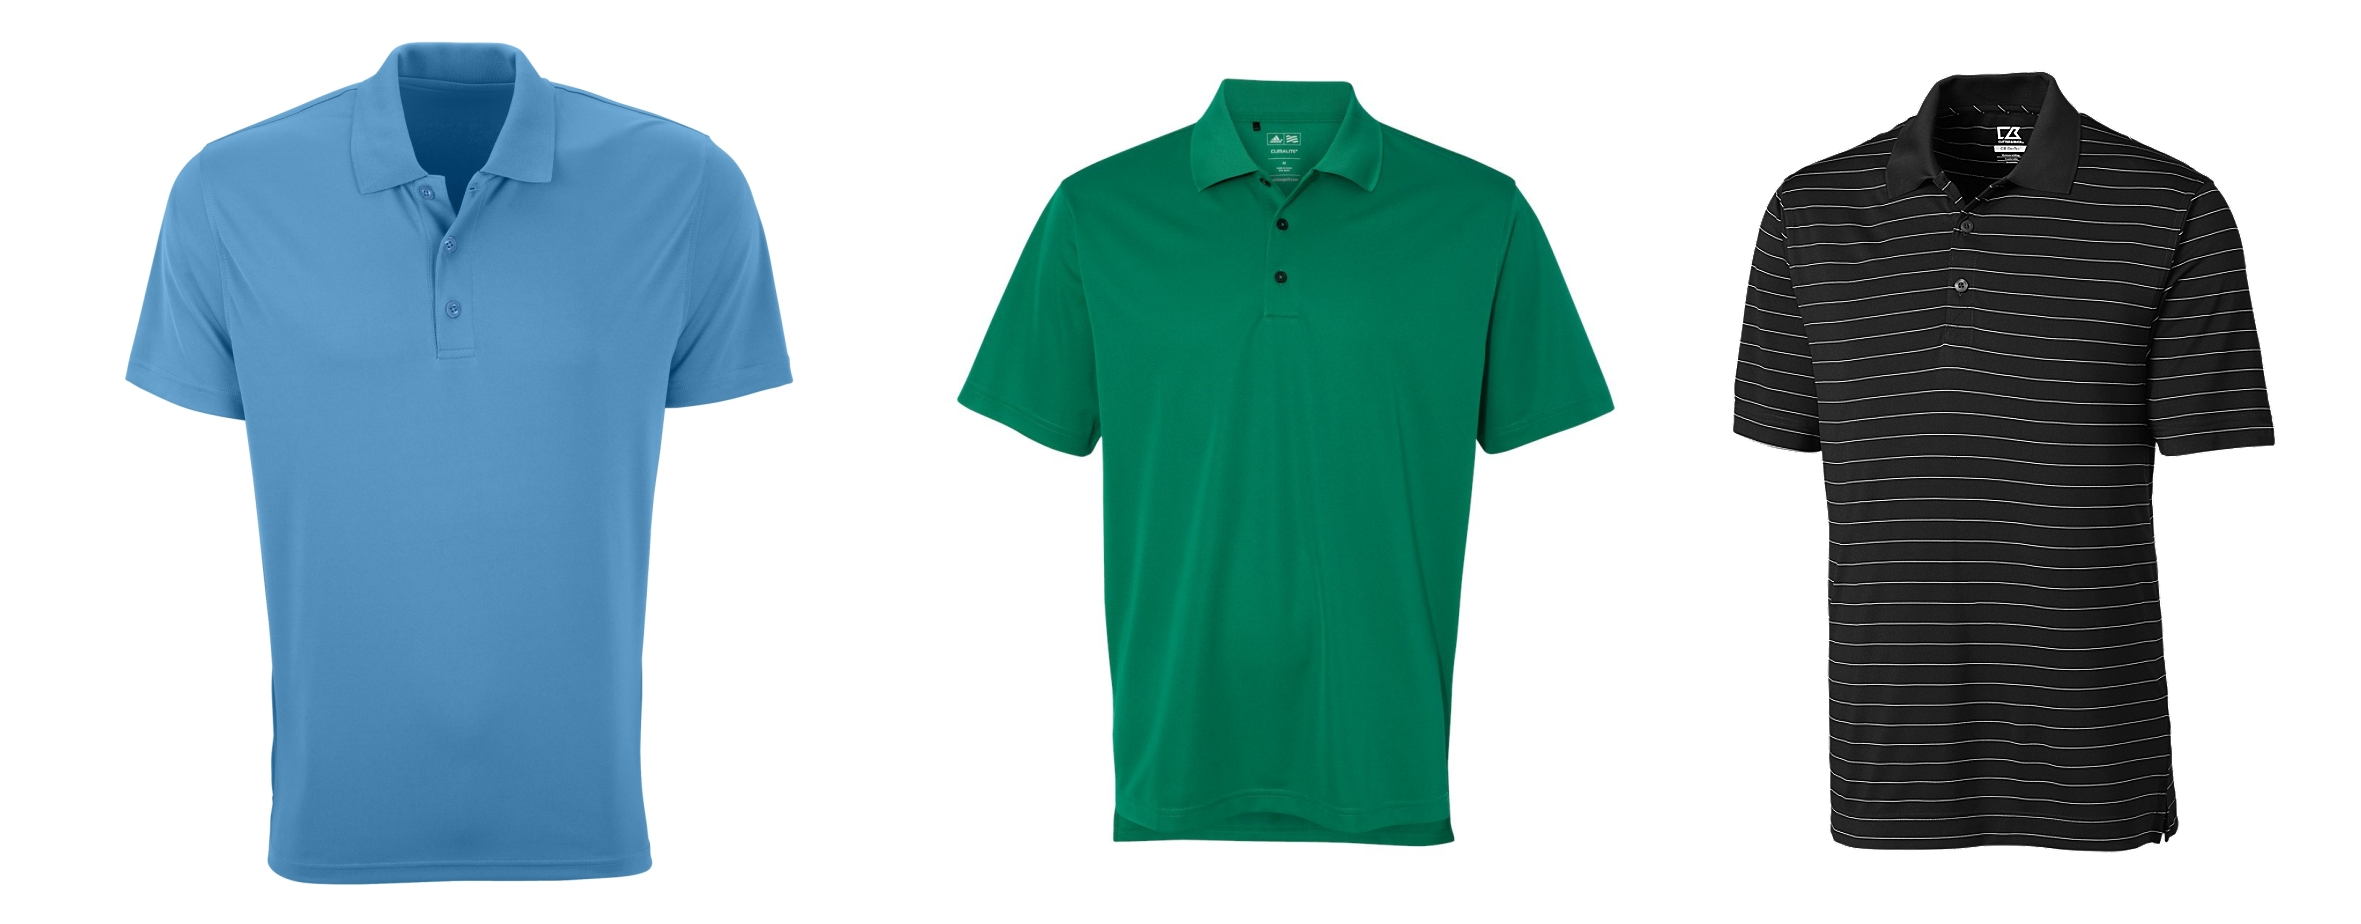 Performance Golf Polo Shirts from NYFifth